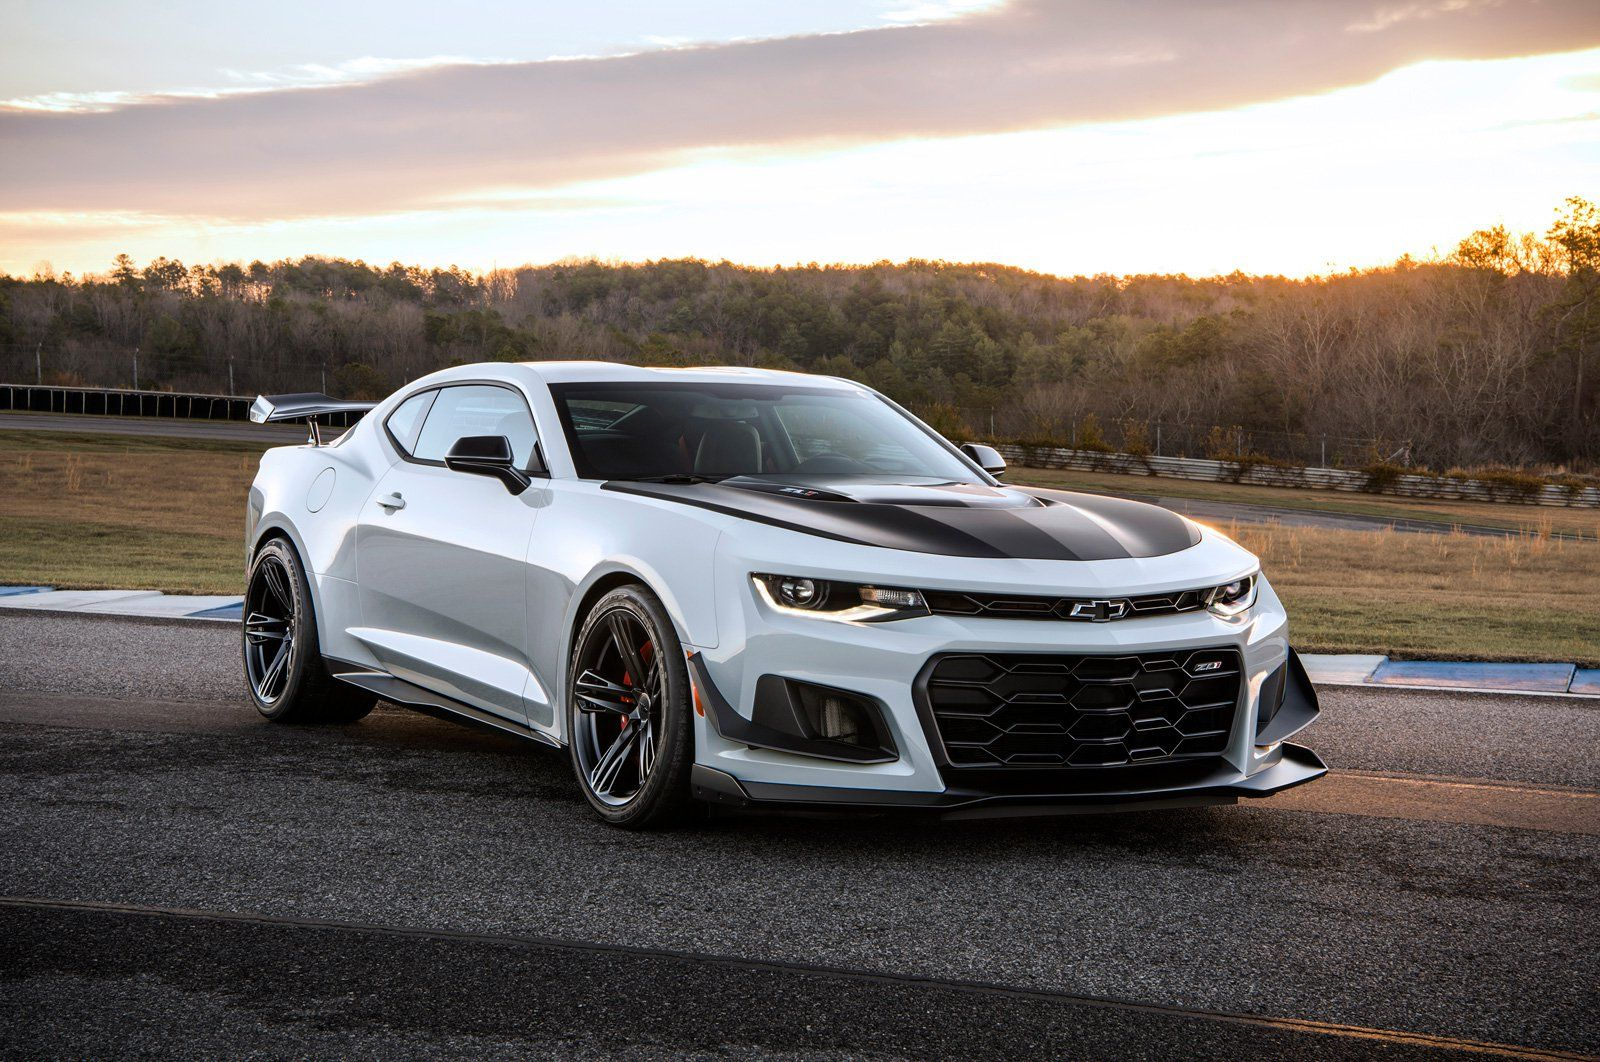 First chevrolet camaro zl1 1le to be auctioned for charity autoguide com news